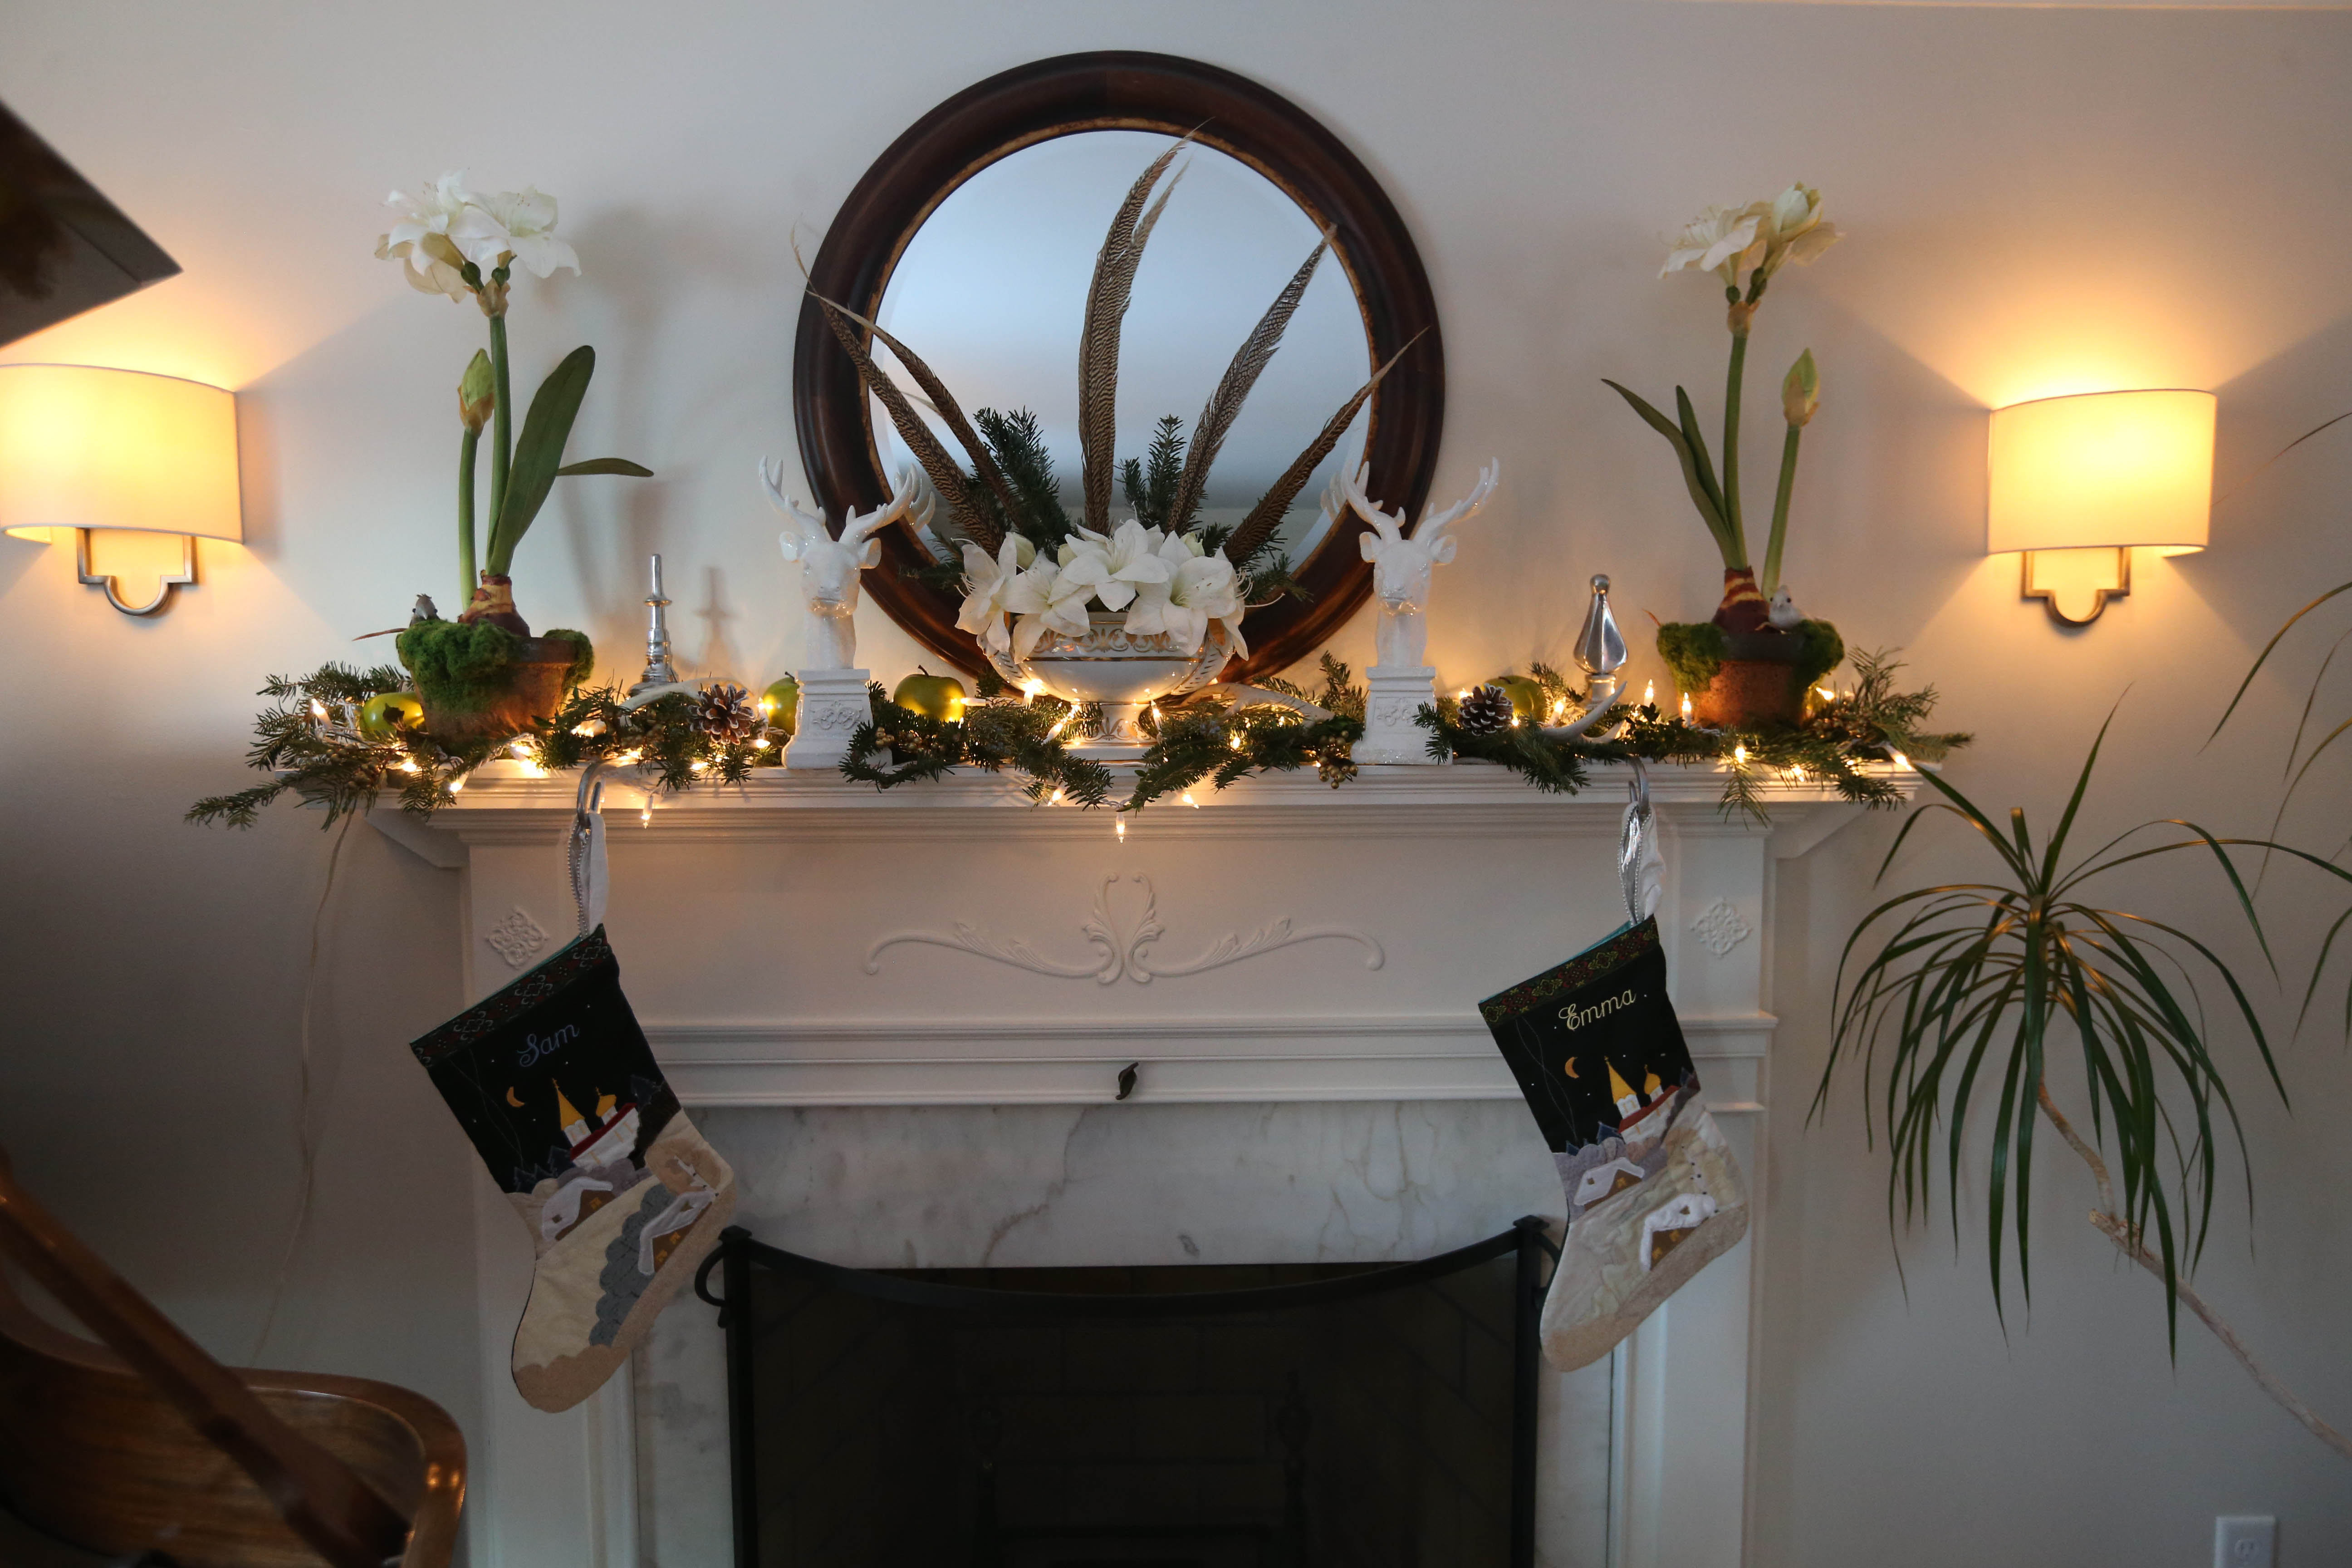 The fireplace mantel in the living room is decorated in ivory, greens and touches of metallics. Photo by Sharon Cantillon/Buffalo News.